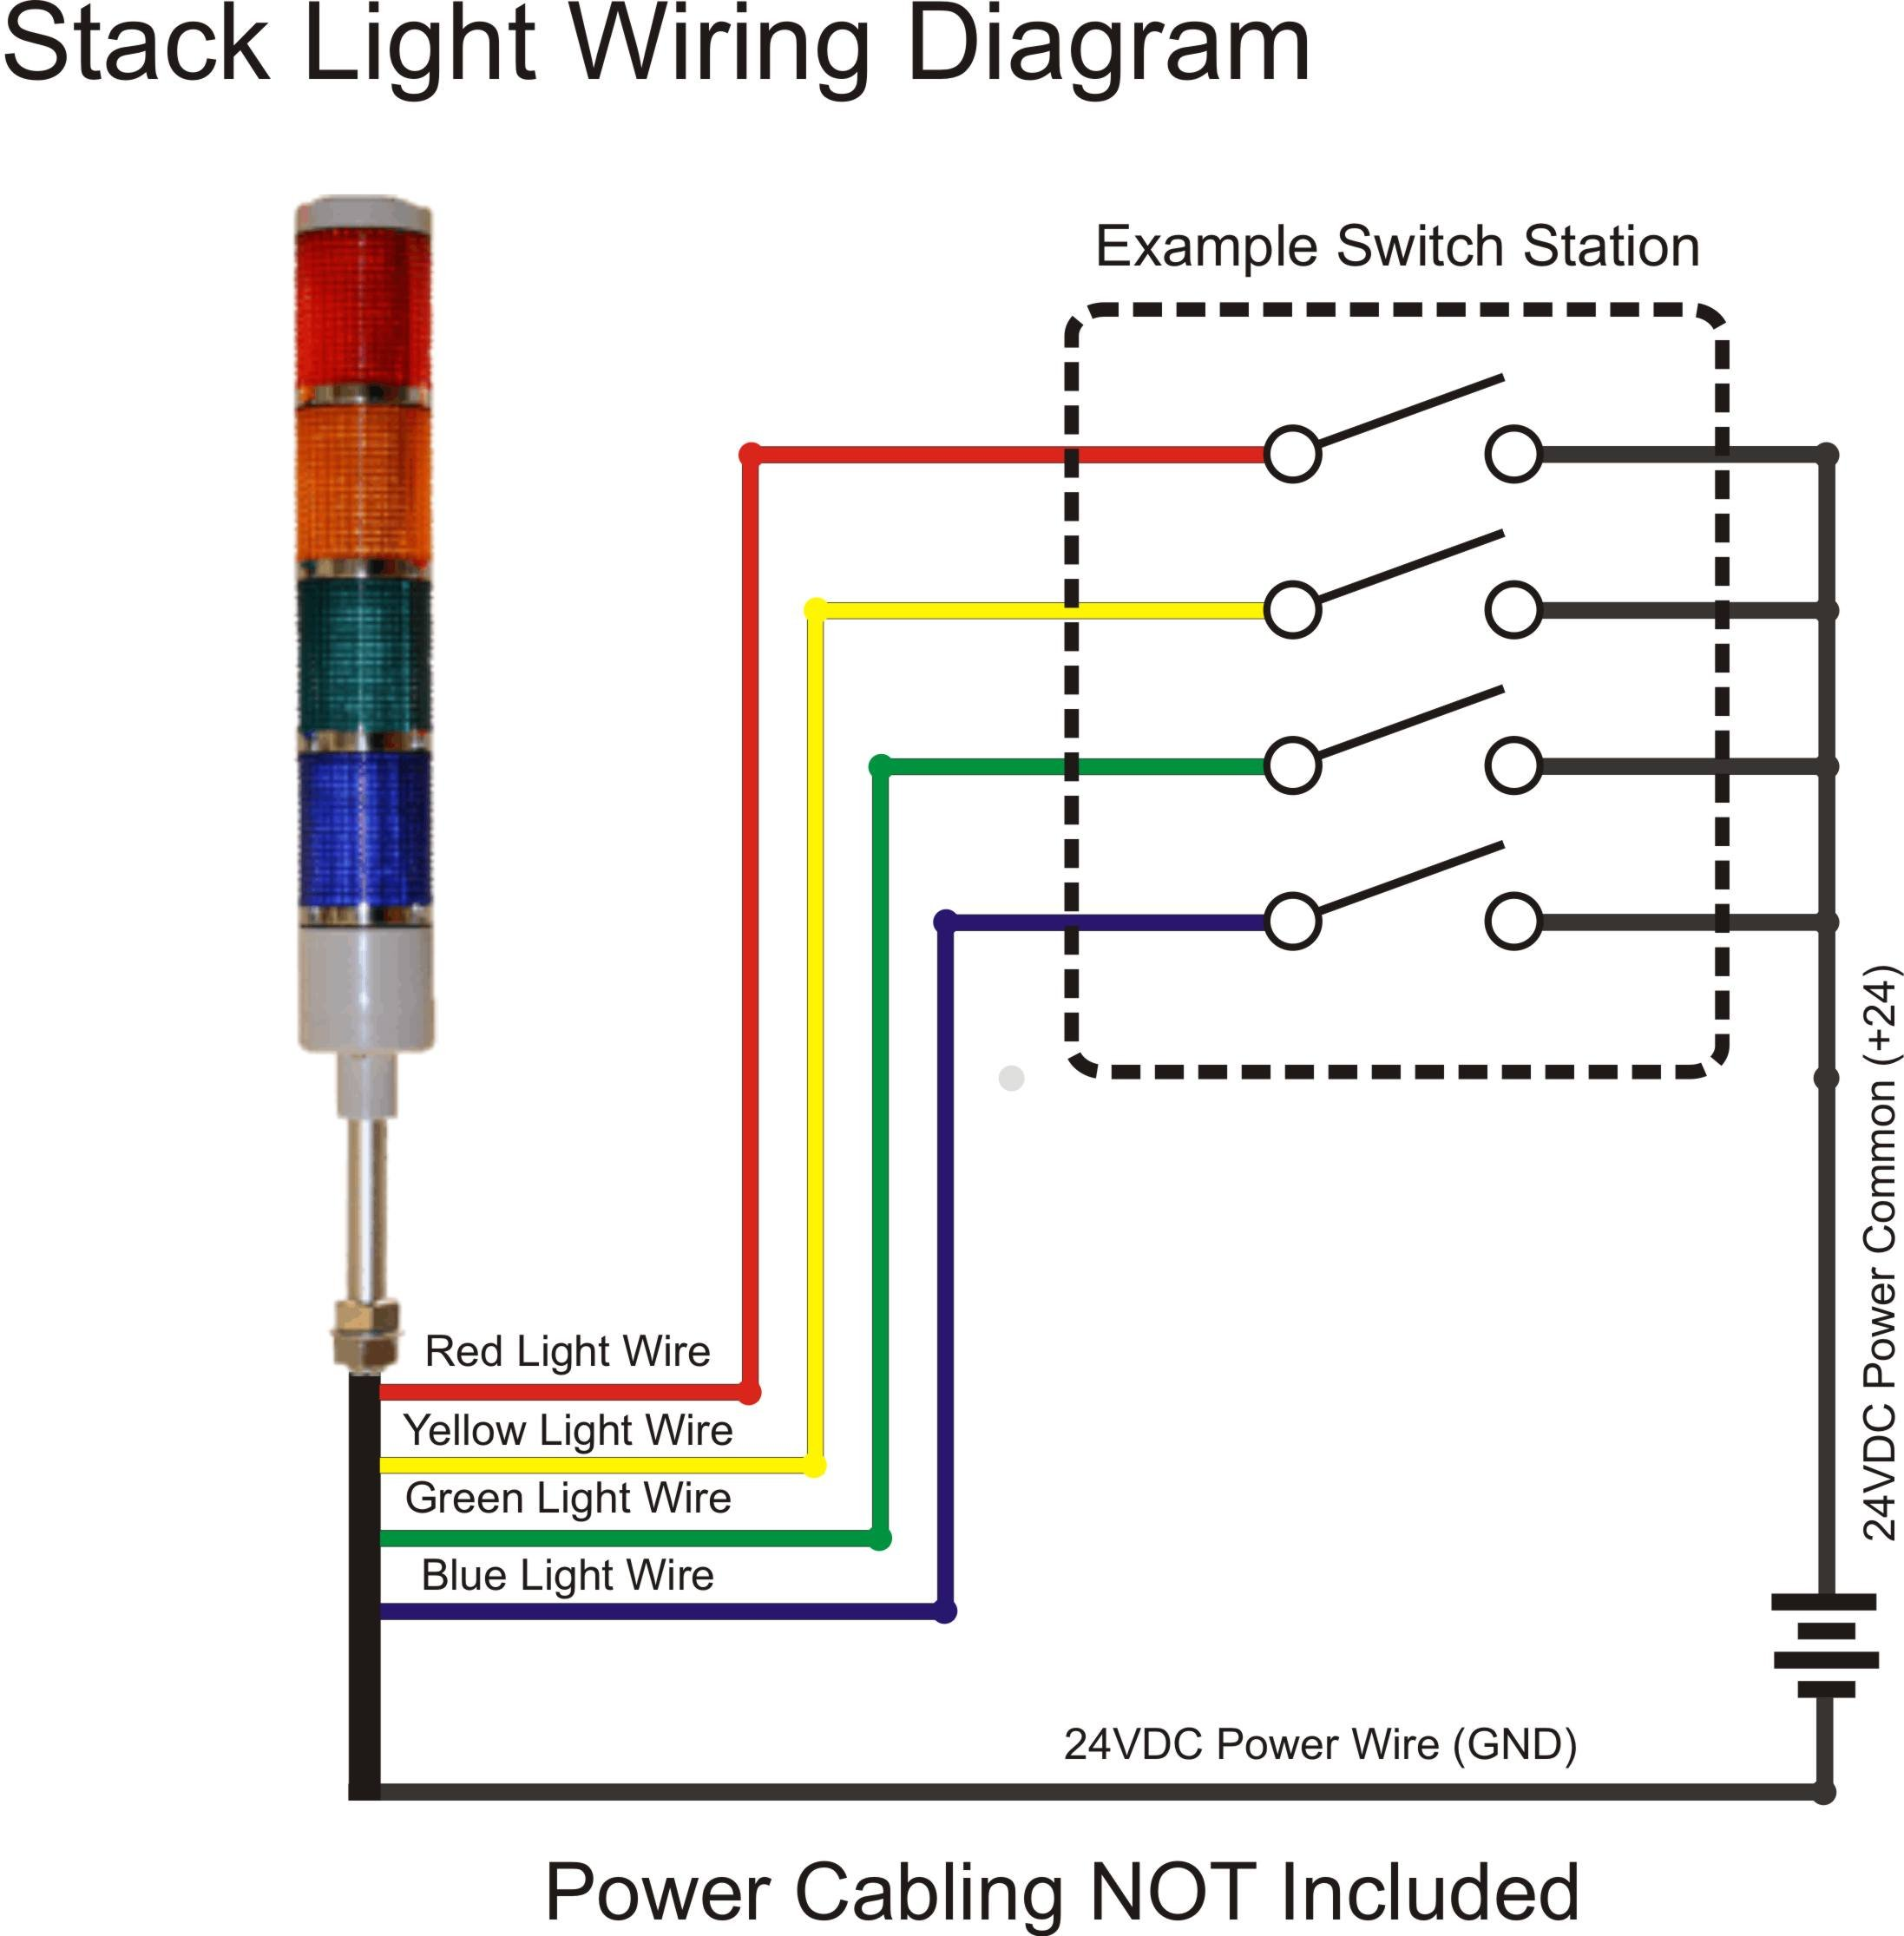 American LED-gible LD-5224-100 LED Tower Light, LED andon light, LED stacklight, 24VDC, Red/Yellow/Green/Blue, Steady